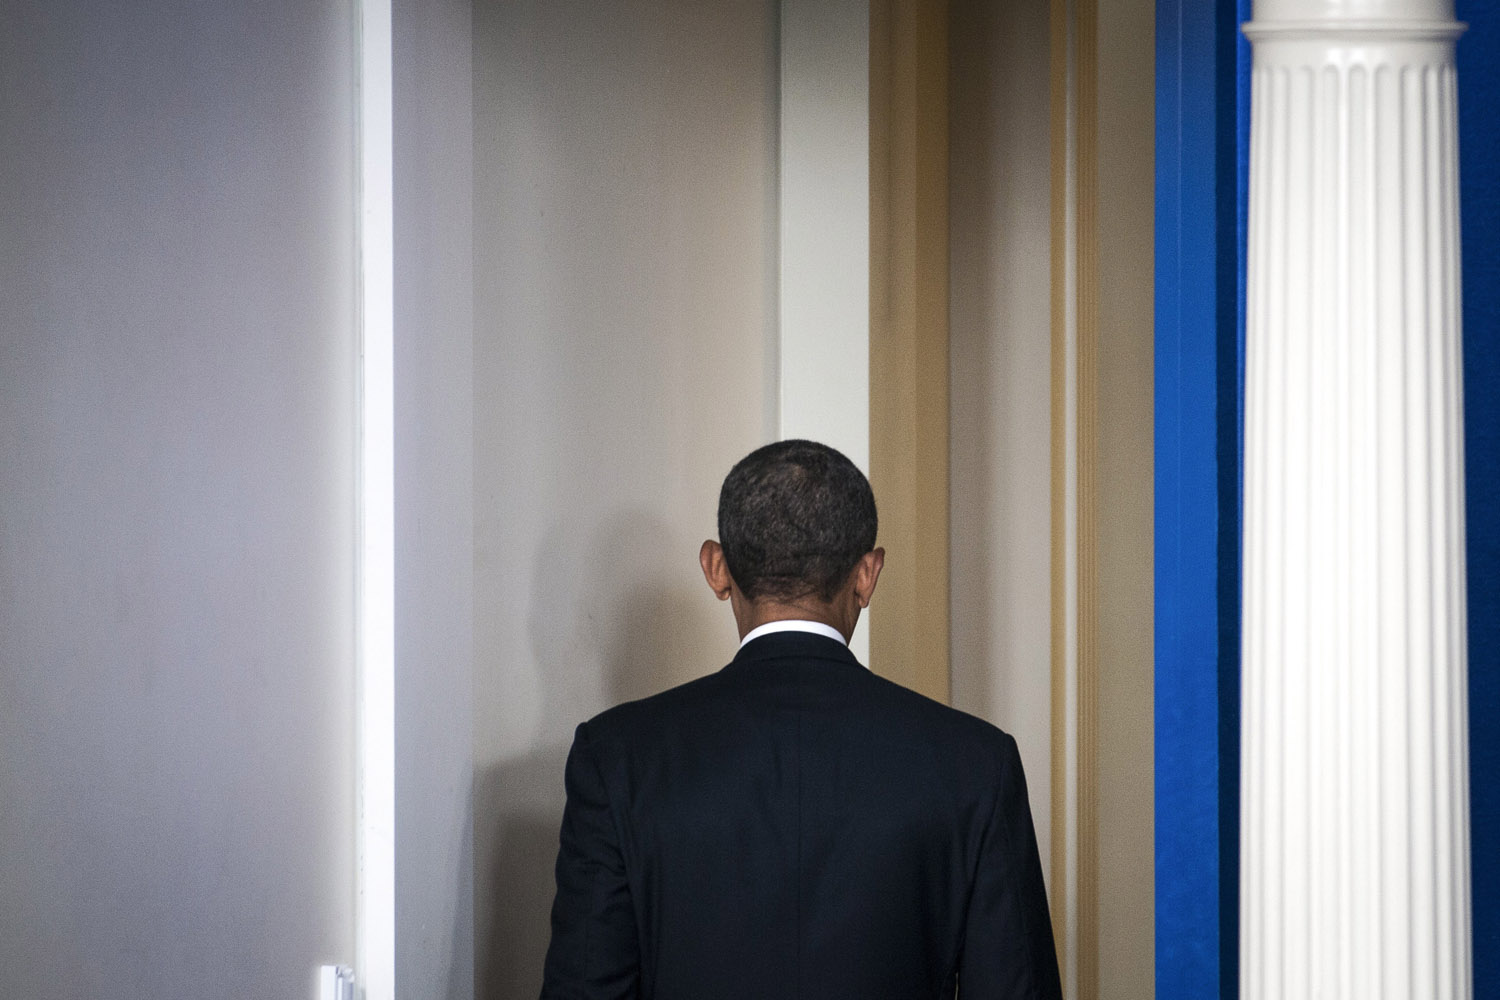 Mar. 17, 2014. President Barack Obama leaves after speaking to reporters at the White House in Washington. The U.S., working in coordination with Europe, imposed a new round of sanctions on prominent Russian officials on Monday as the showdown over Ukraine reached a new stage of confrontation between East and West.